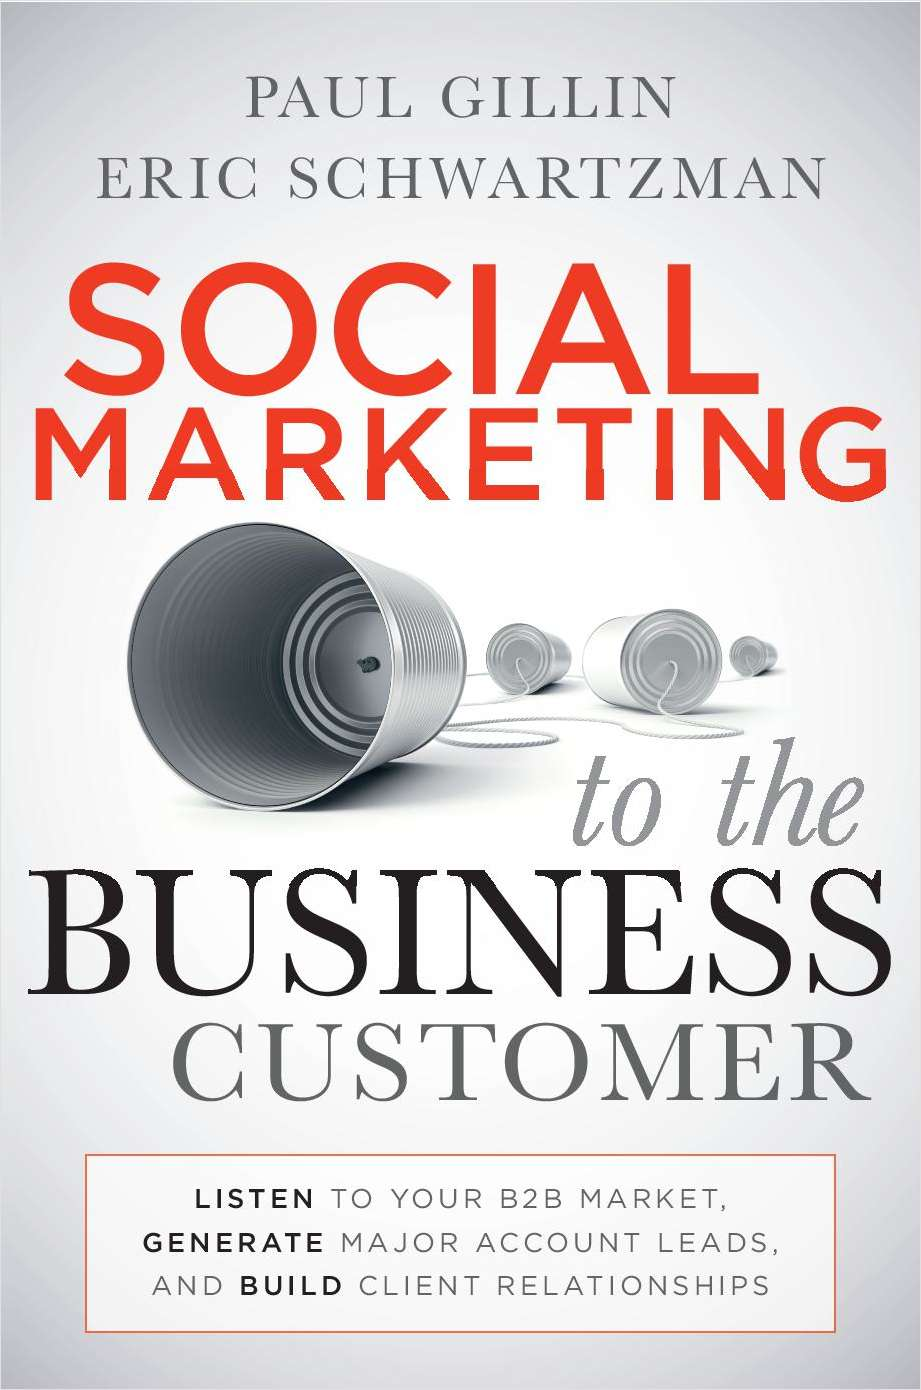 Social Marketing to the Business Customer - Free Sample Chapter